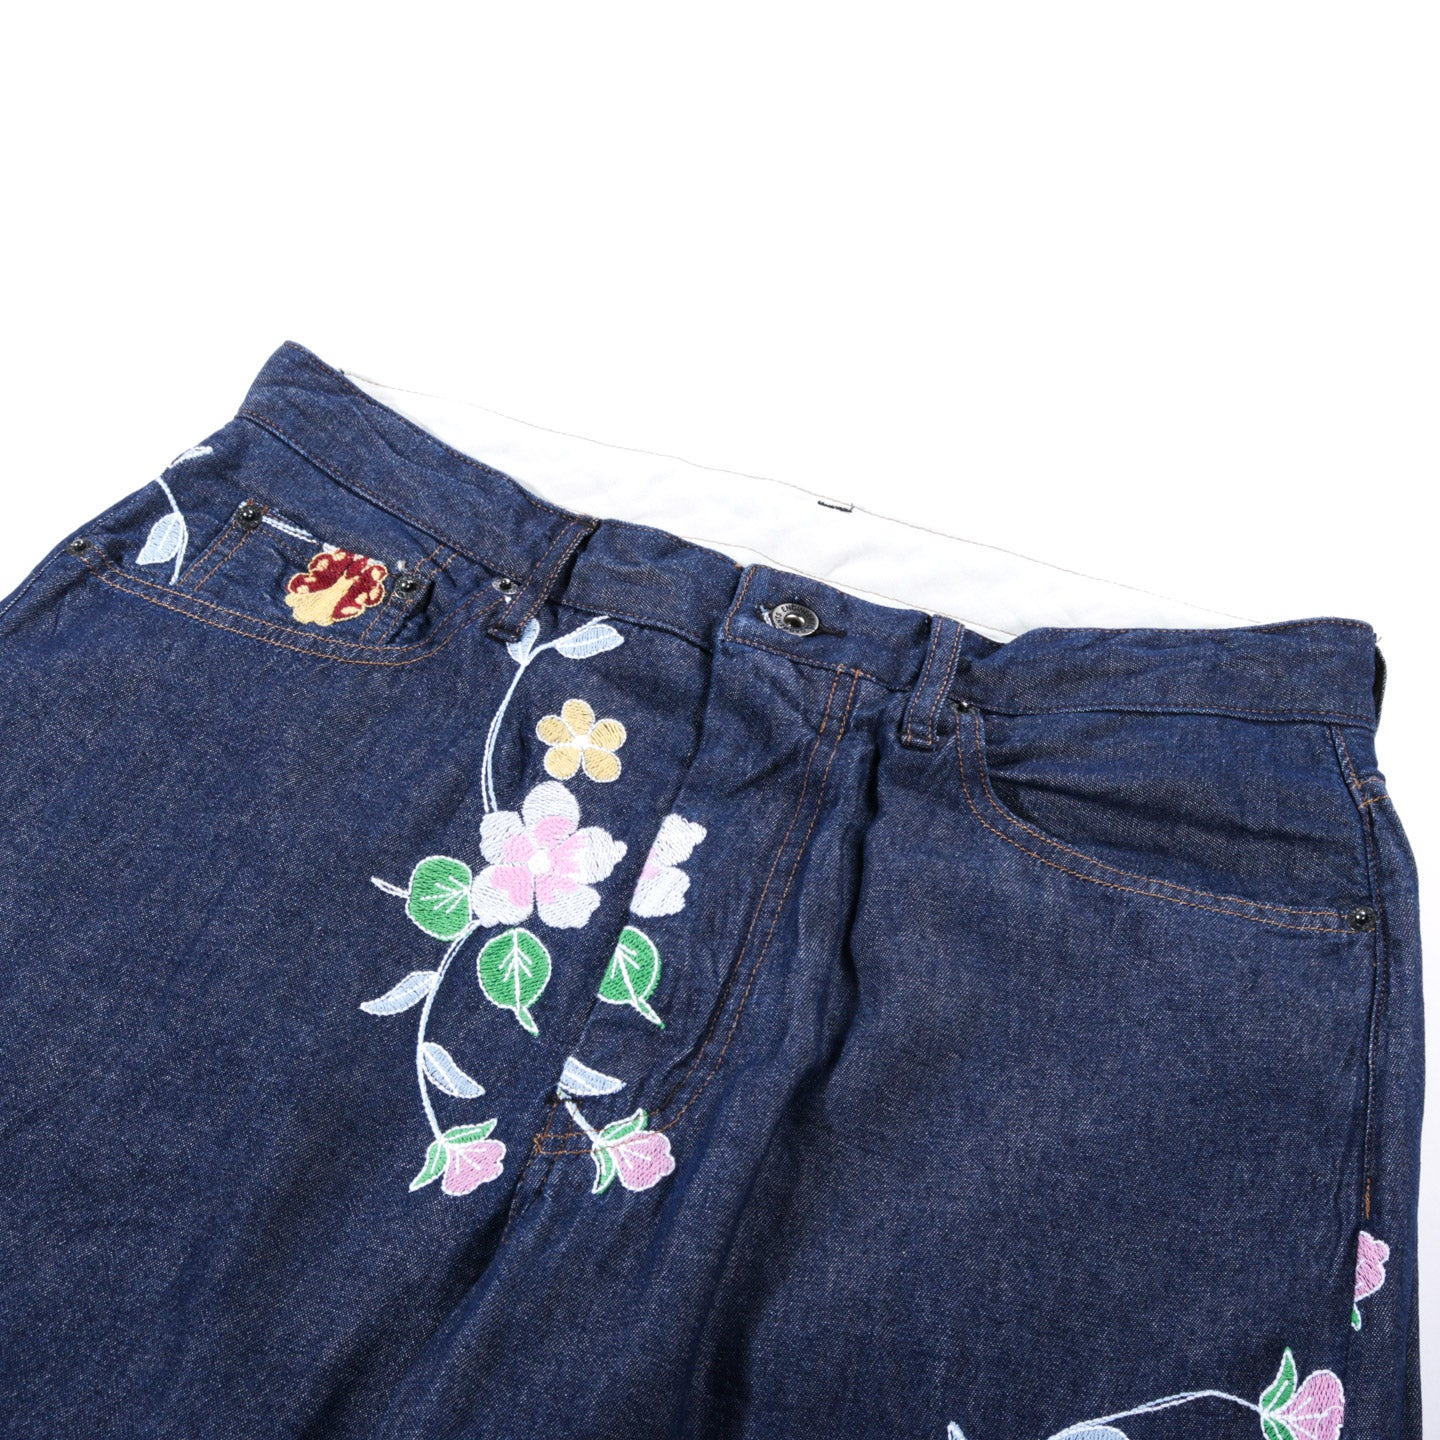 ENGINEERED GARMENTS PEG JEAN INDIGO DENIM FLORAL EMBROIDERY